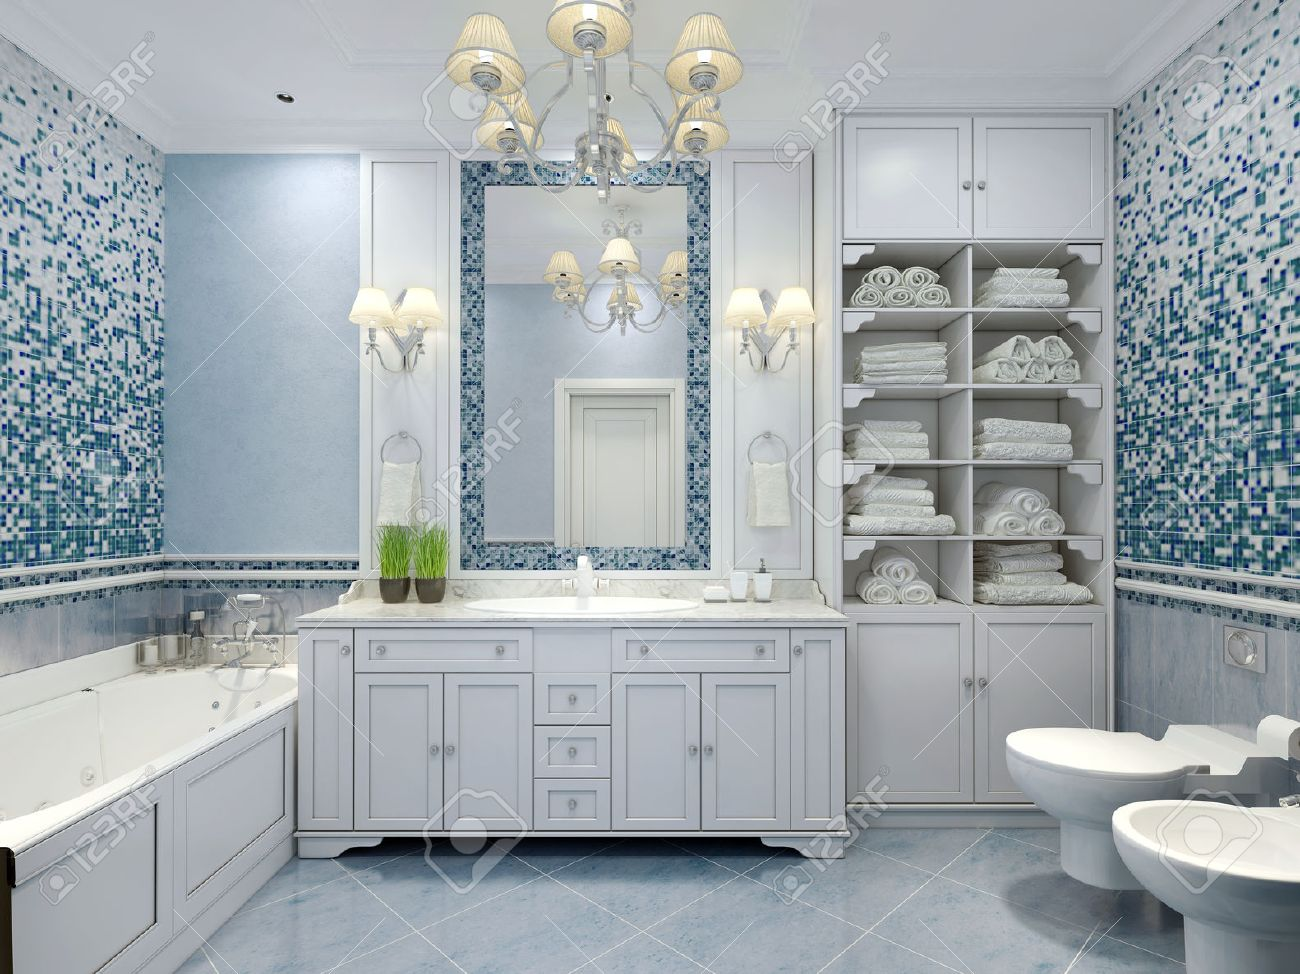 Furniture In Classic Blue Bathroom. Blue Colored Bathroom With ...